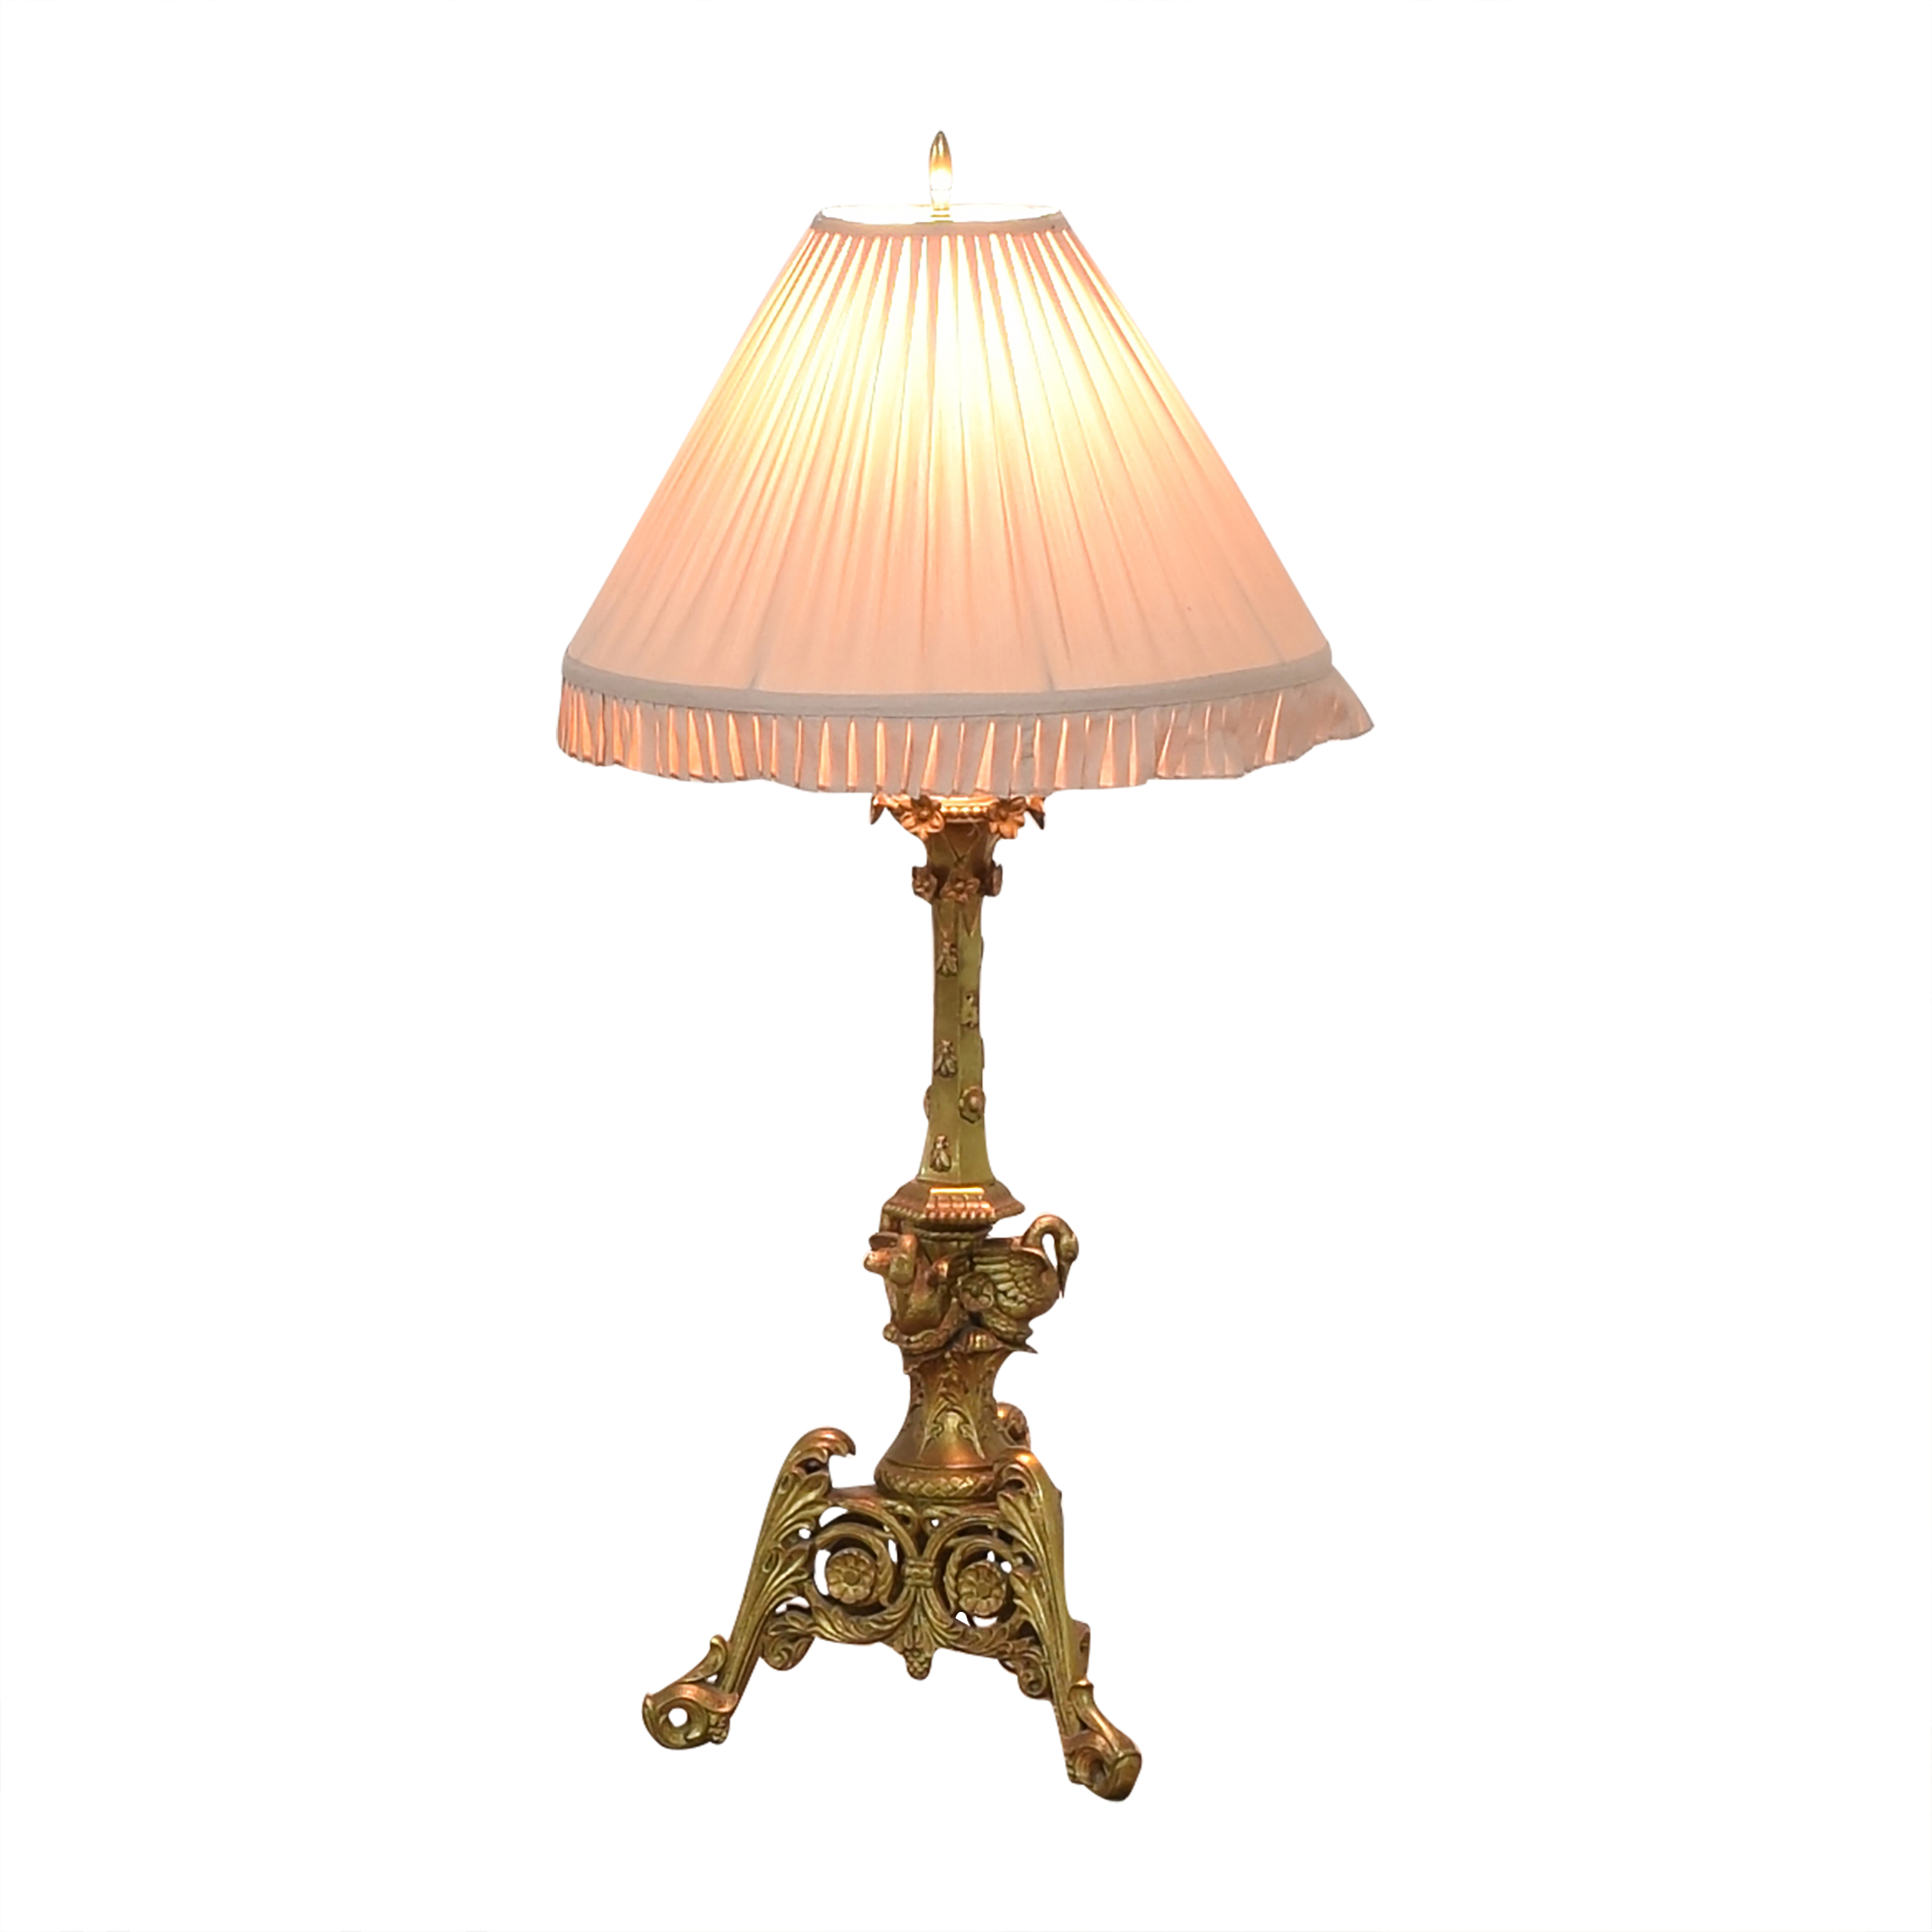 Wescal Wescal Table Lamp Lamps